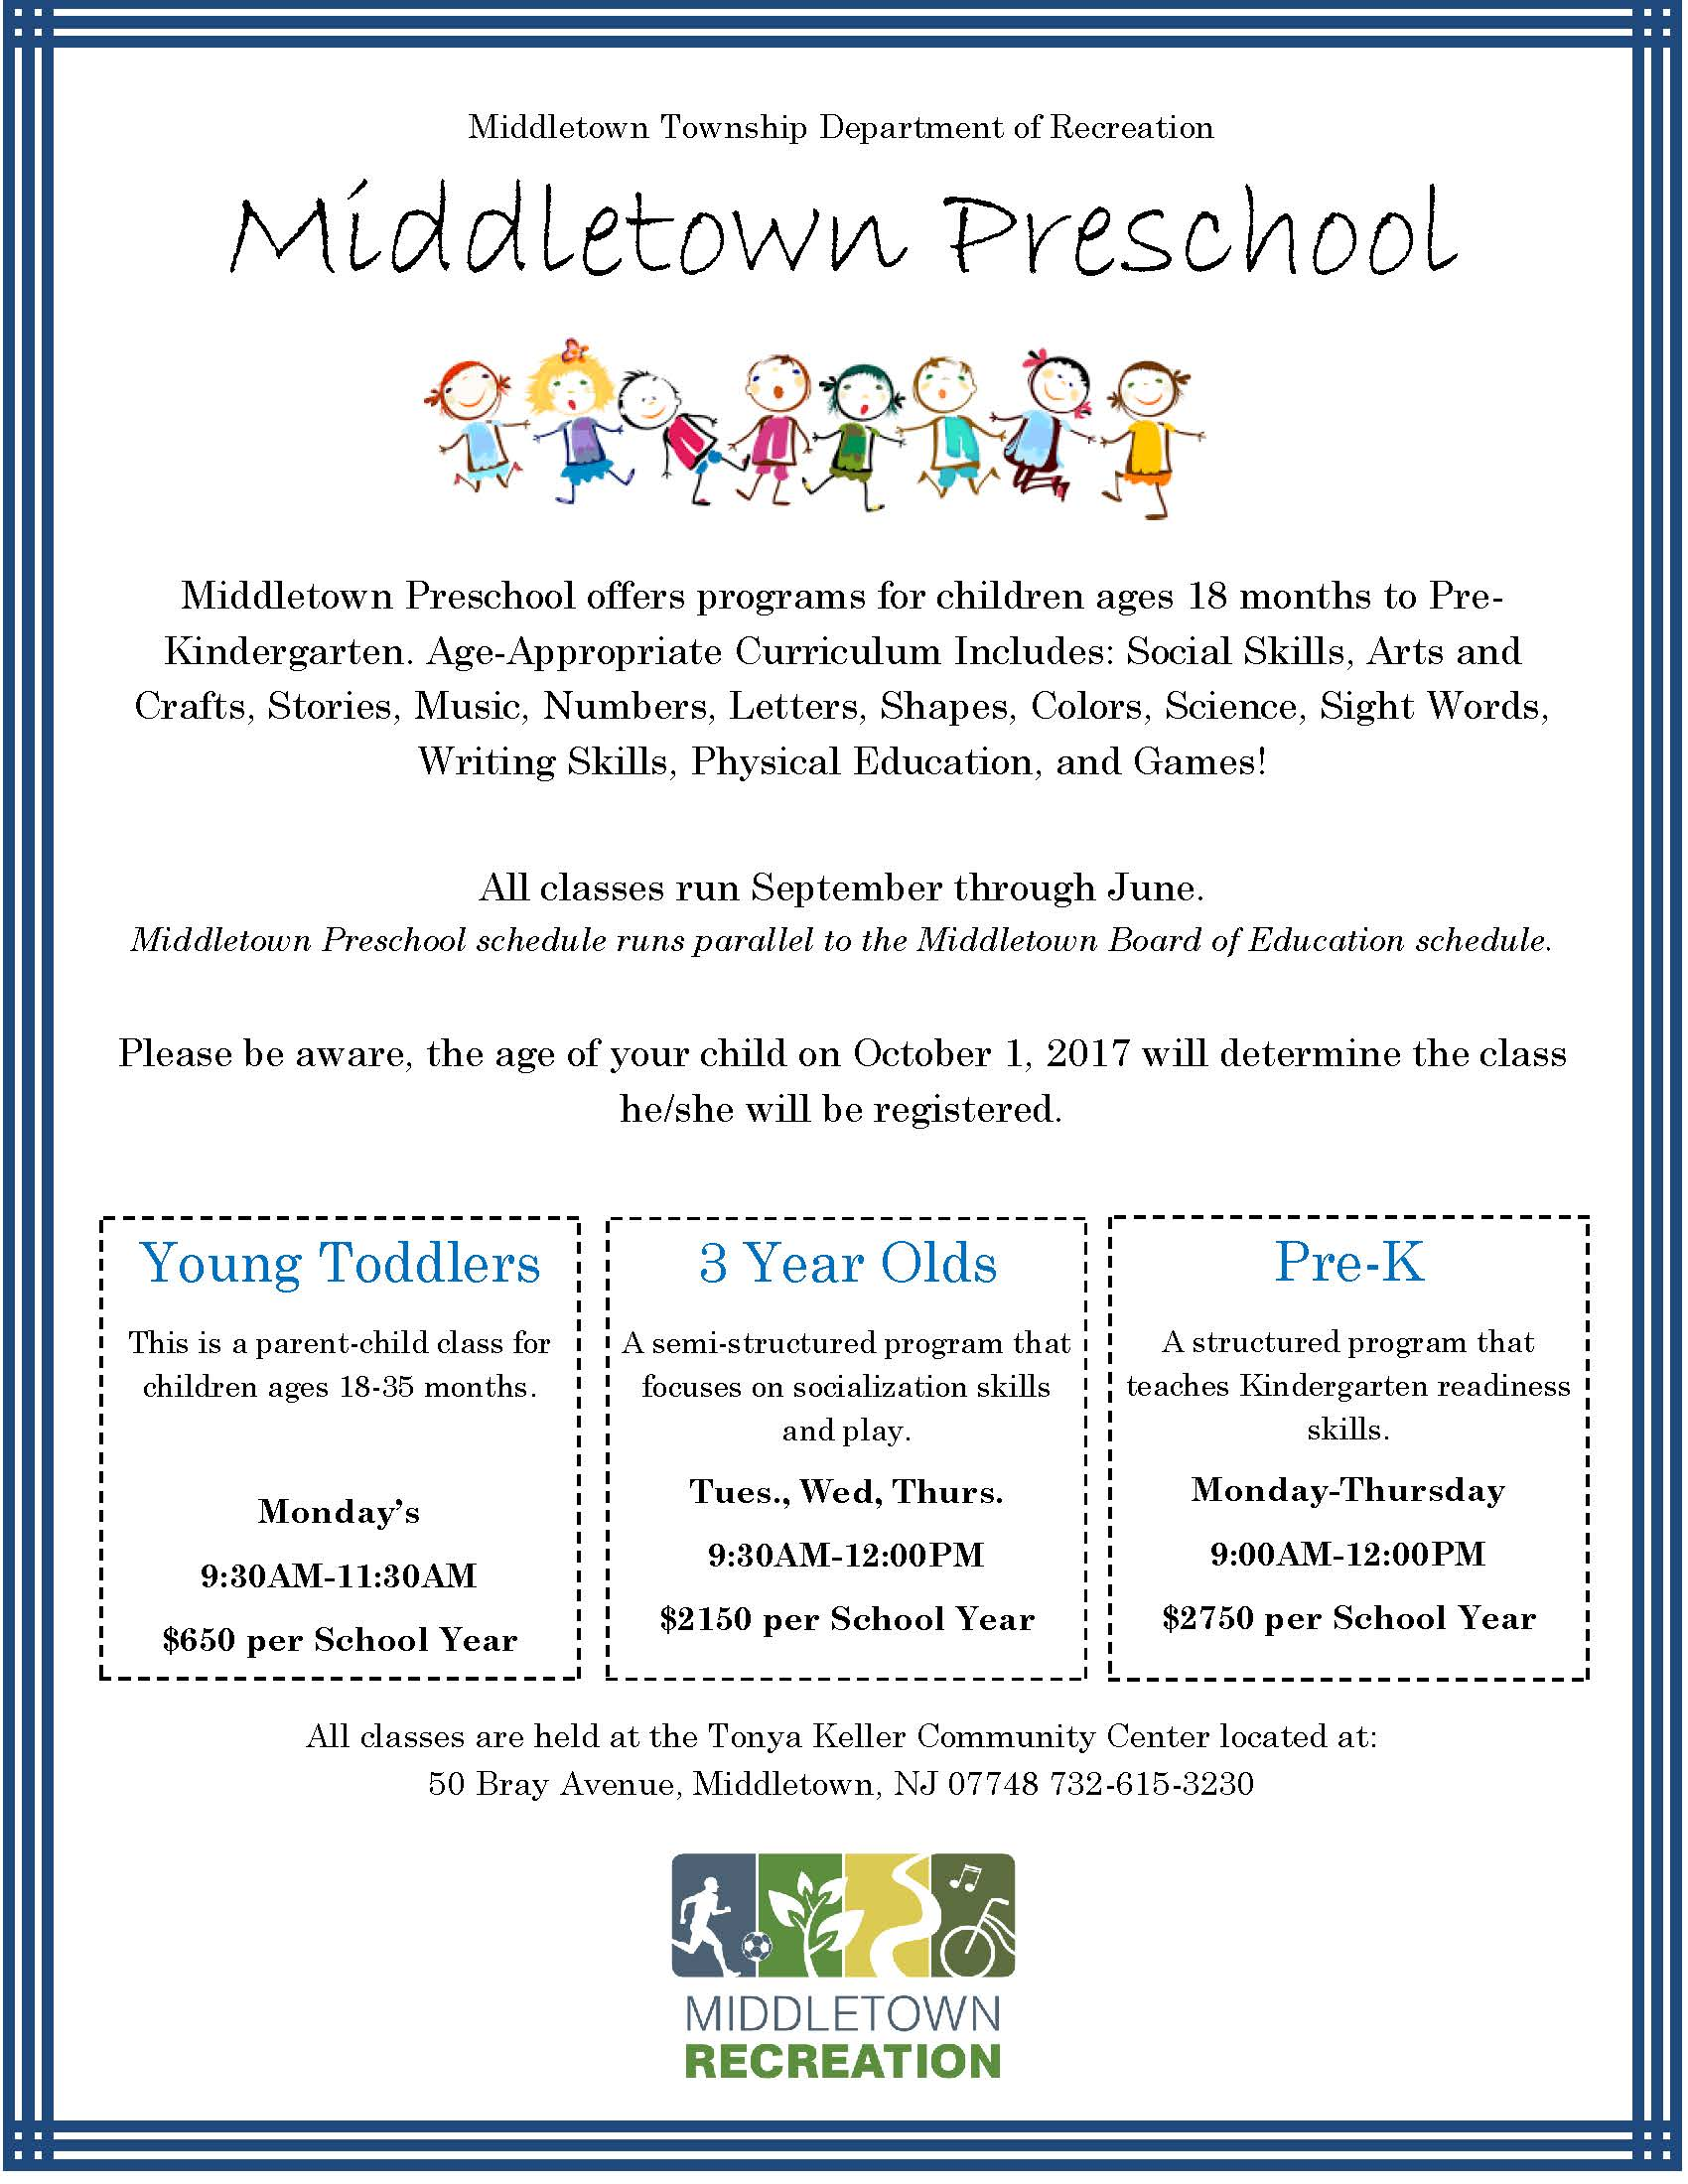 Middletown Preschool_ 2017